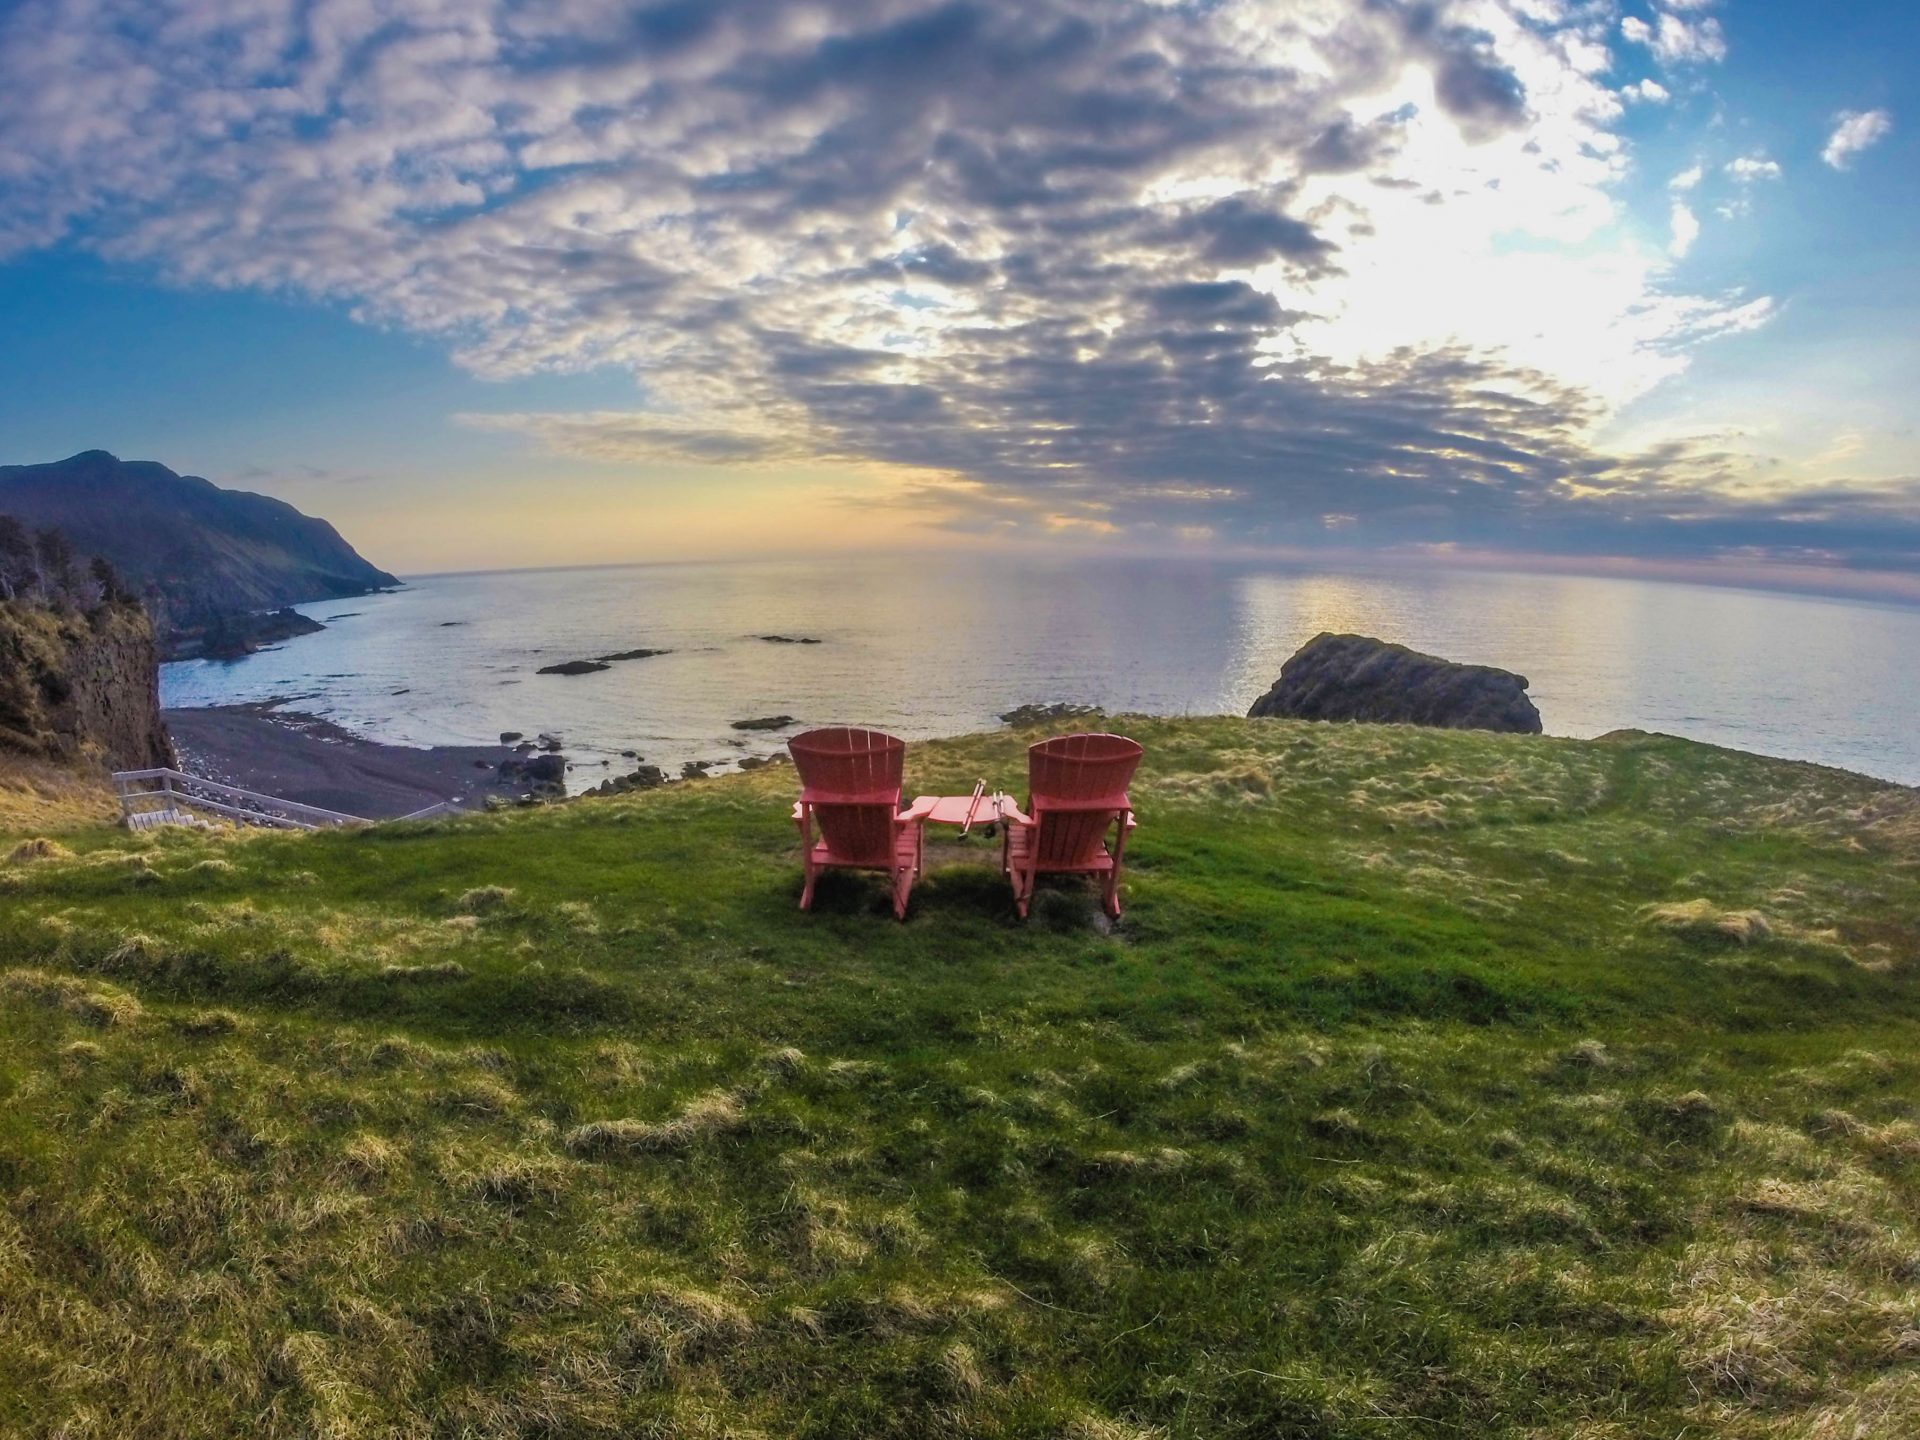 Two muskoka chairs on grass overlooking the ocean from trail at Gros Morne National Park is one of the iconic destinations in Canada.